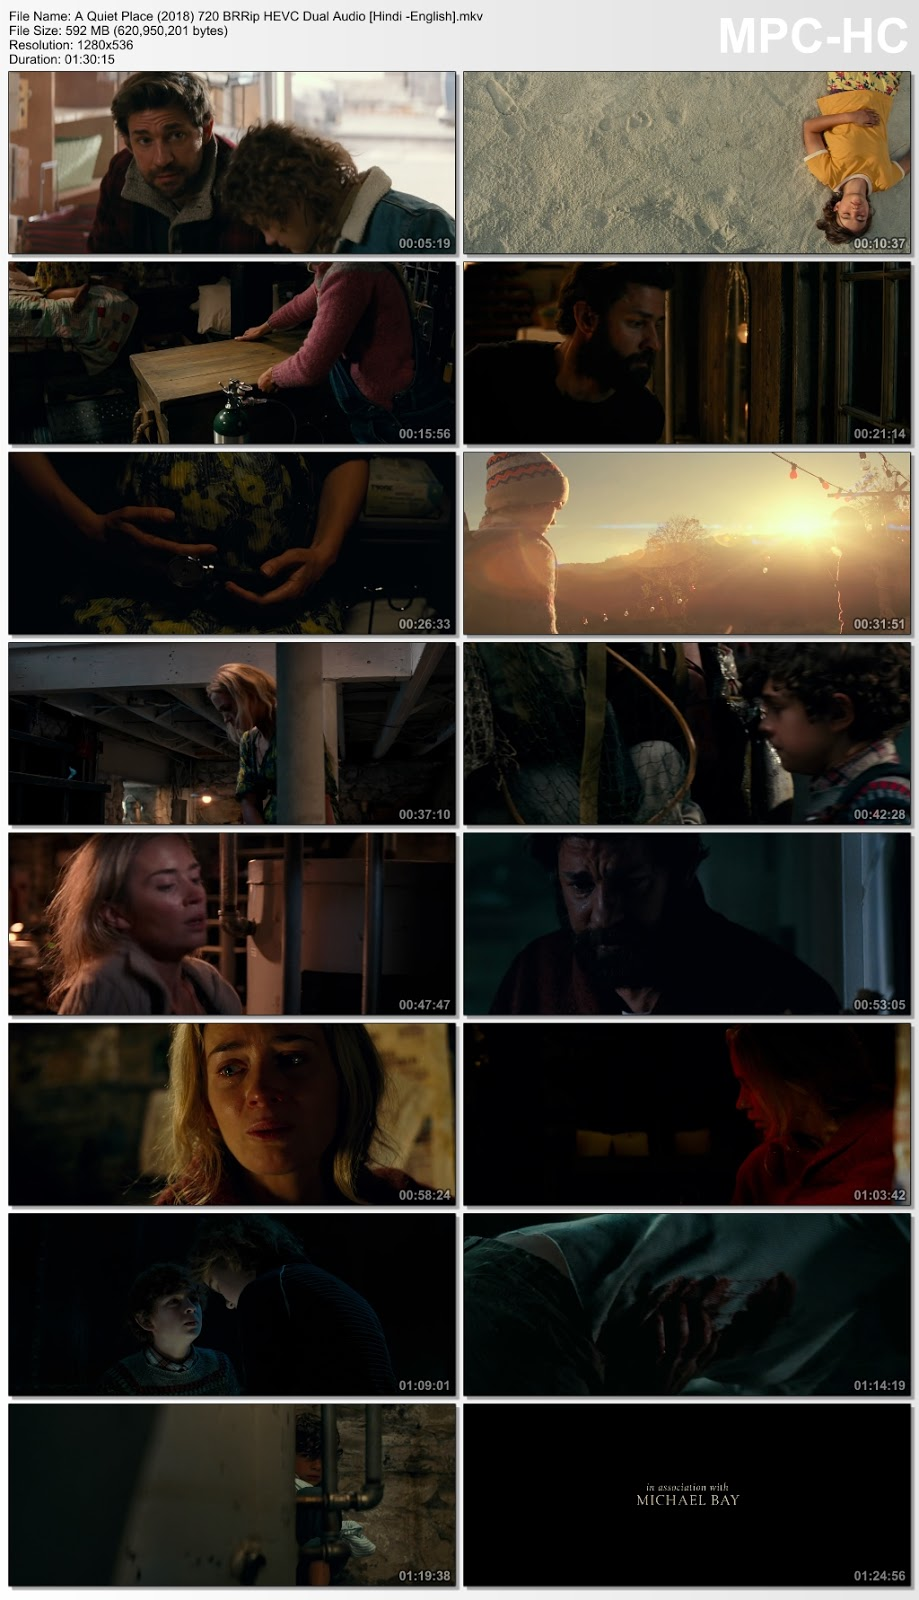 A Quiet Place (2018) 720 BRRip HEVC Dual Audio [Hindi -English] 600MB Desirehub